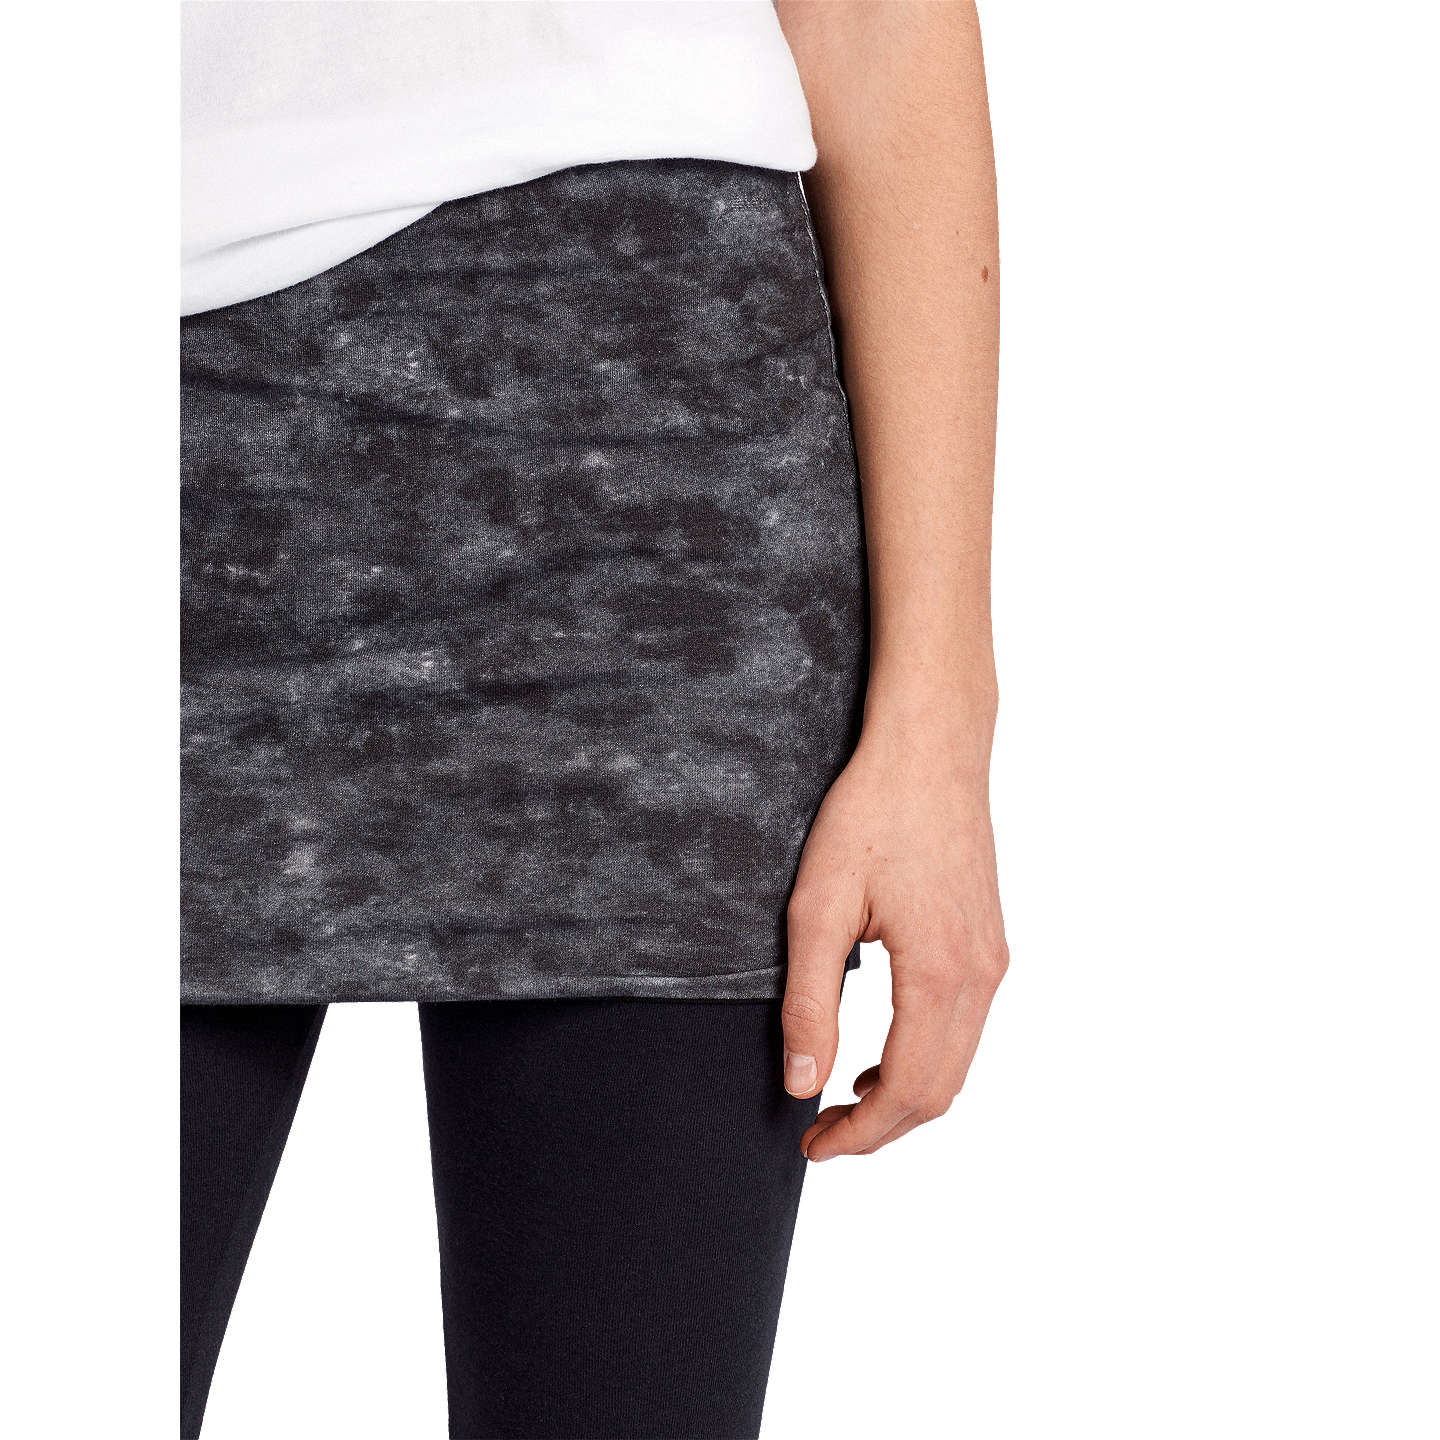 BuyAllSaints Raffi Leggings, Washed Black, XS Online at johnlewis.com